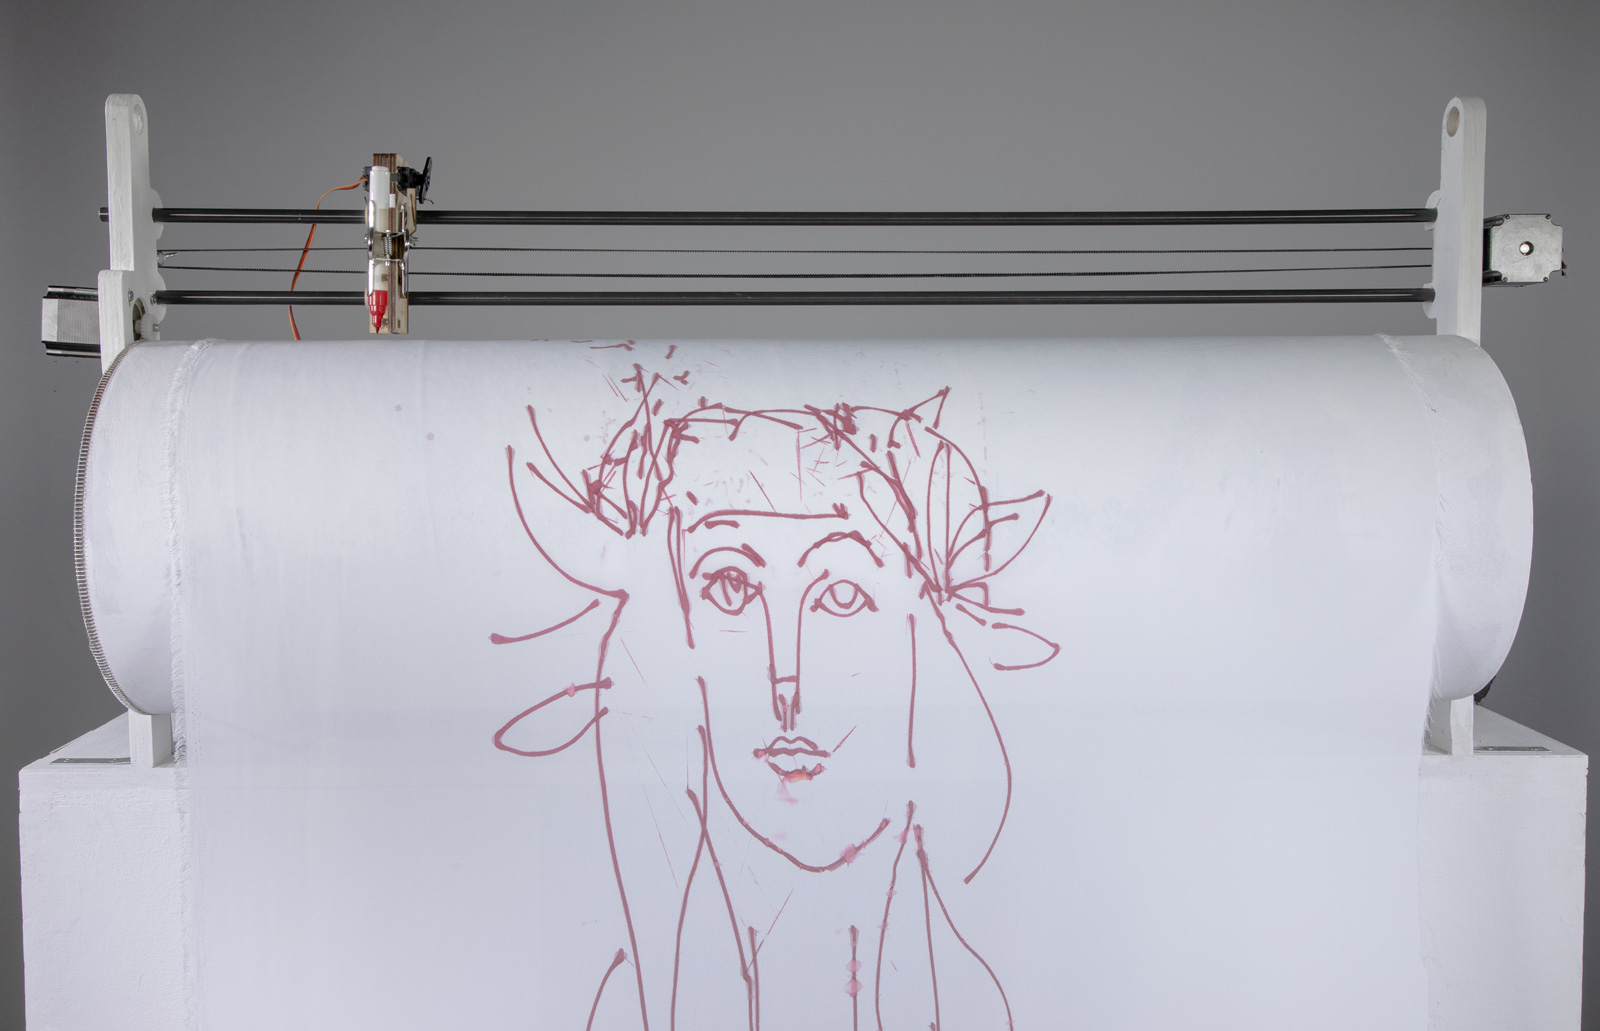 A robot holding sheet of fabric with a drawing of a Picasso-style face, with the sheet of paper on a roller with a pen held